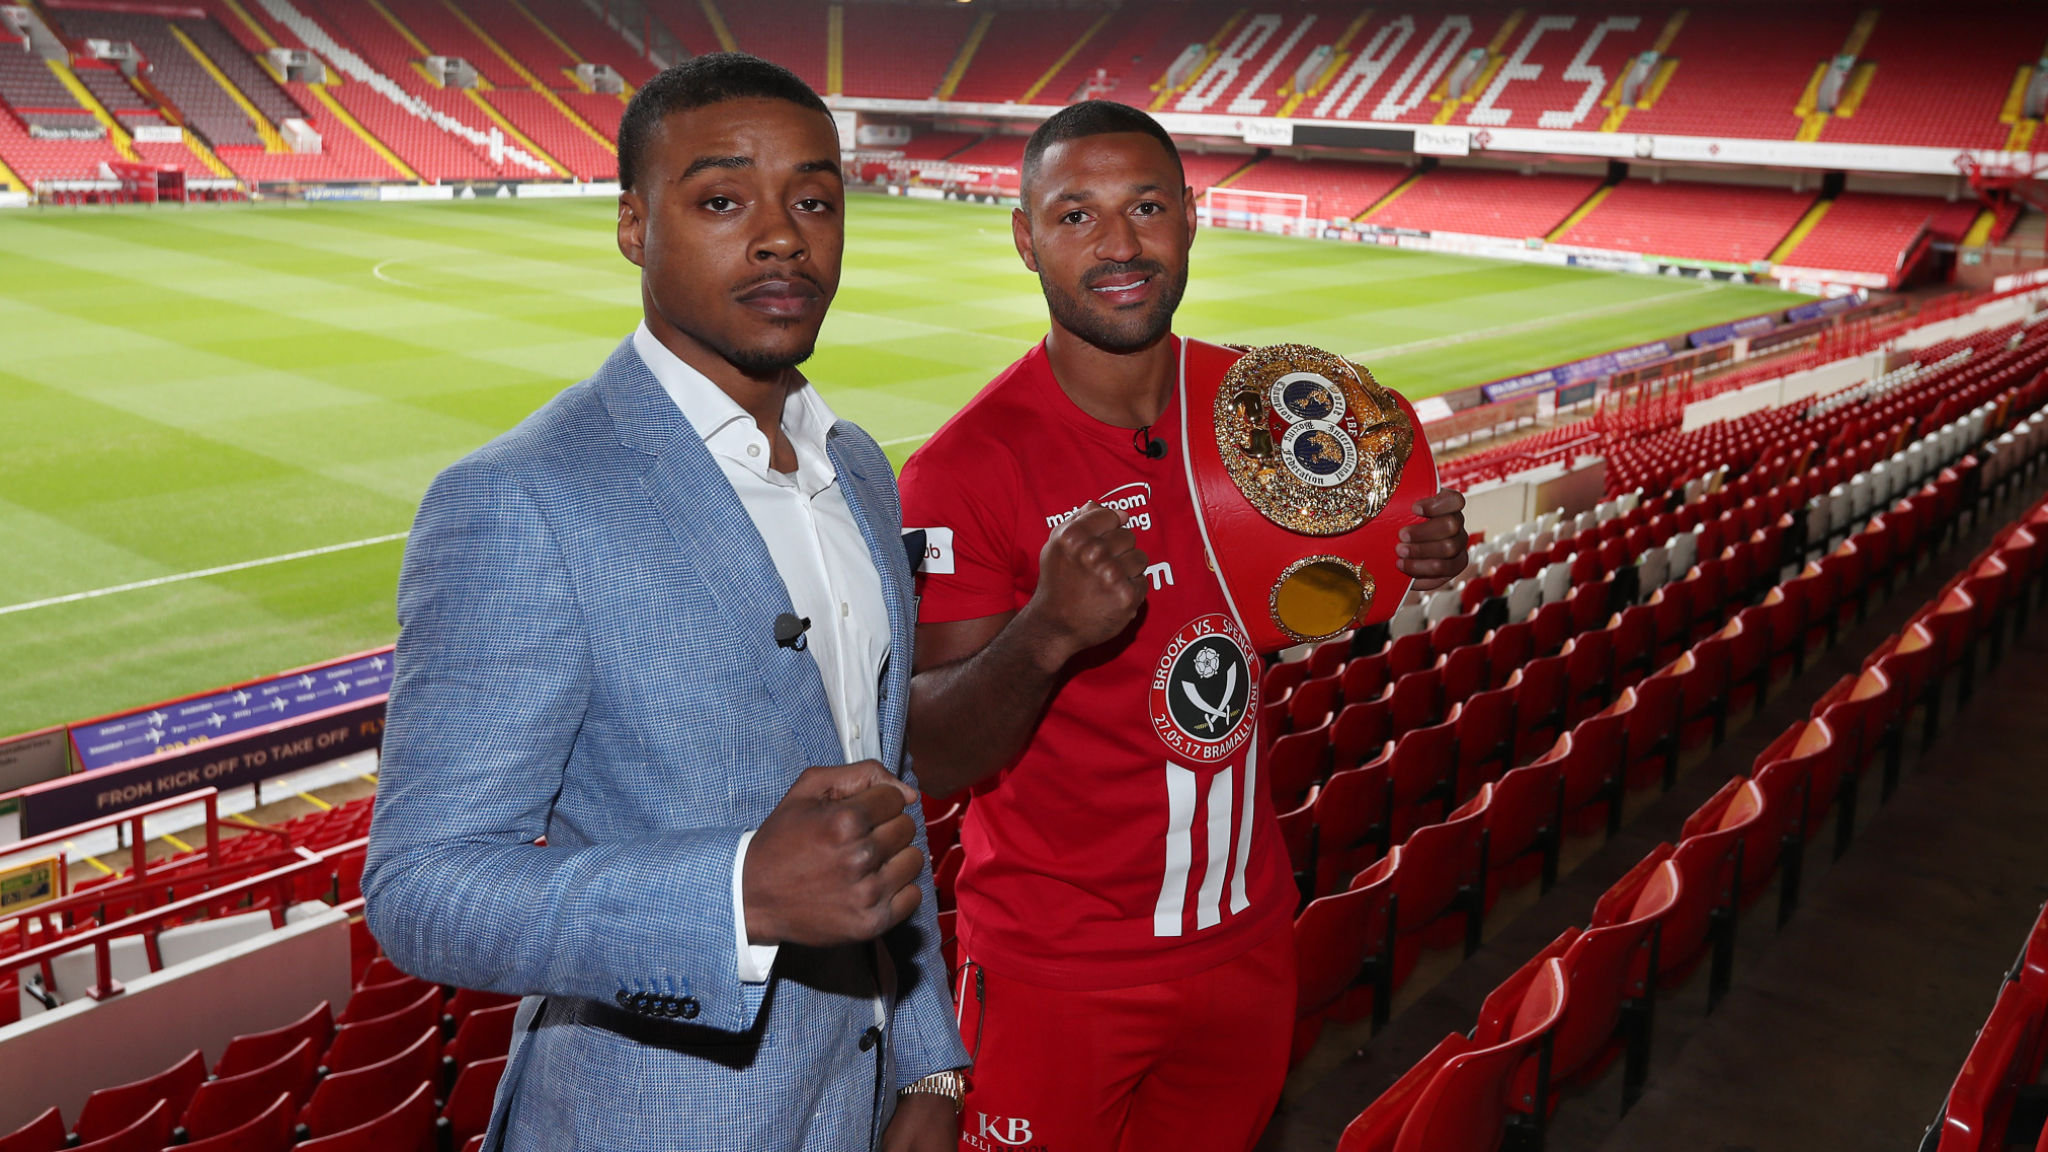 Spence vs Brook at Bramall Lane, Sheffield